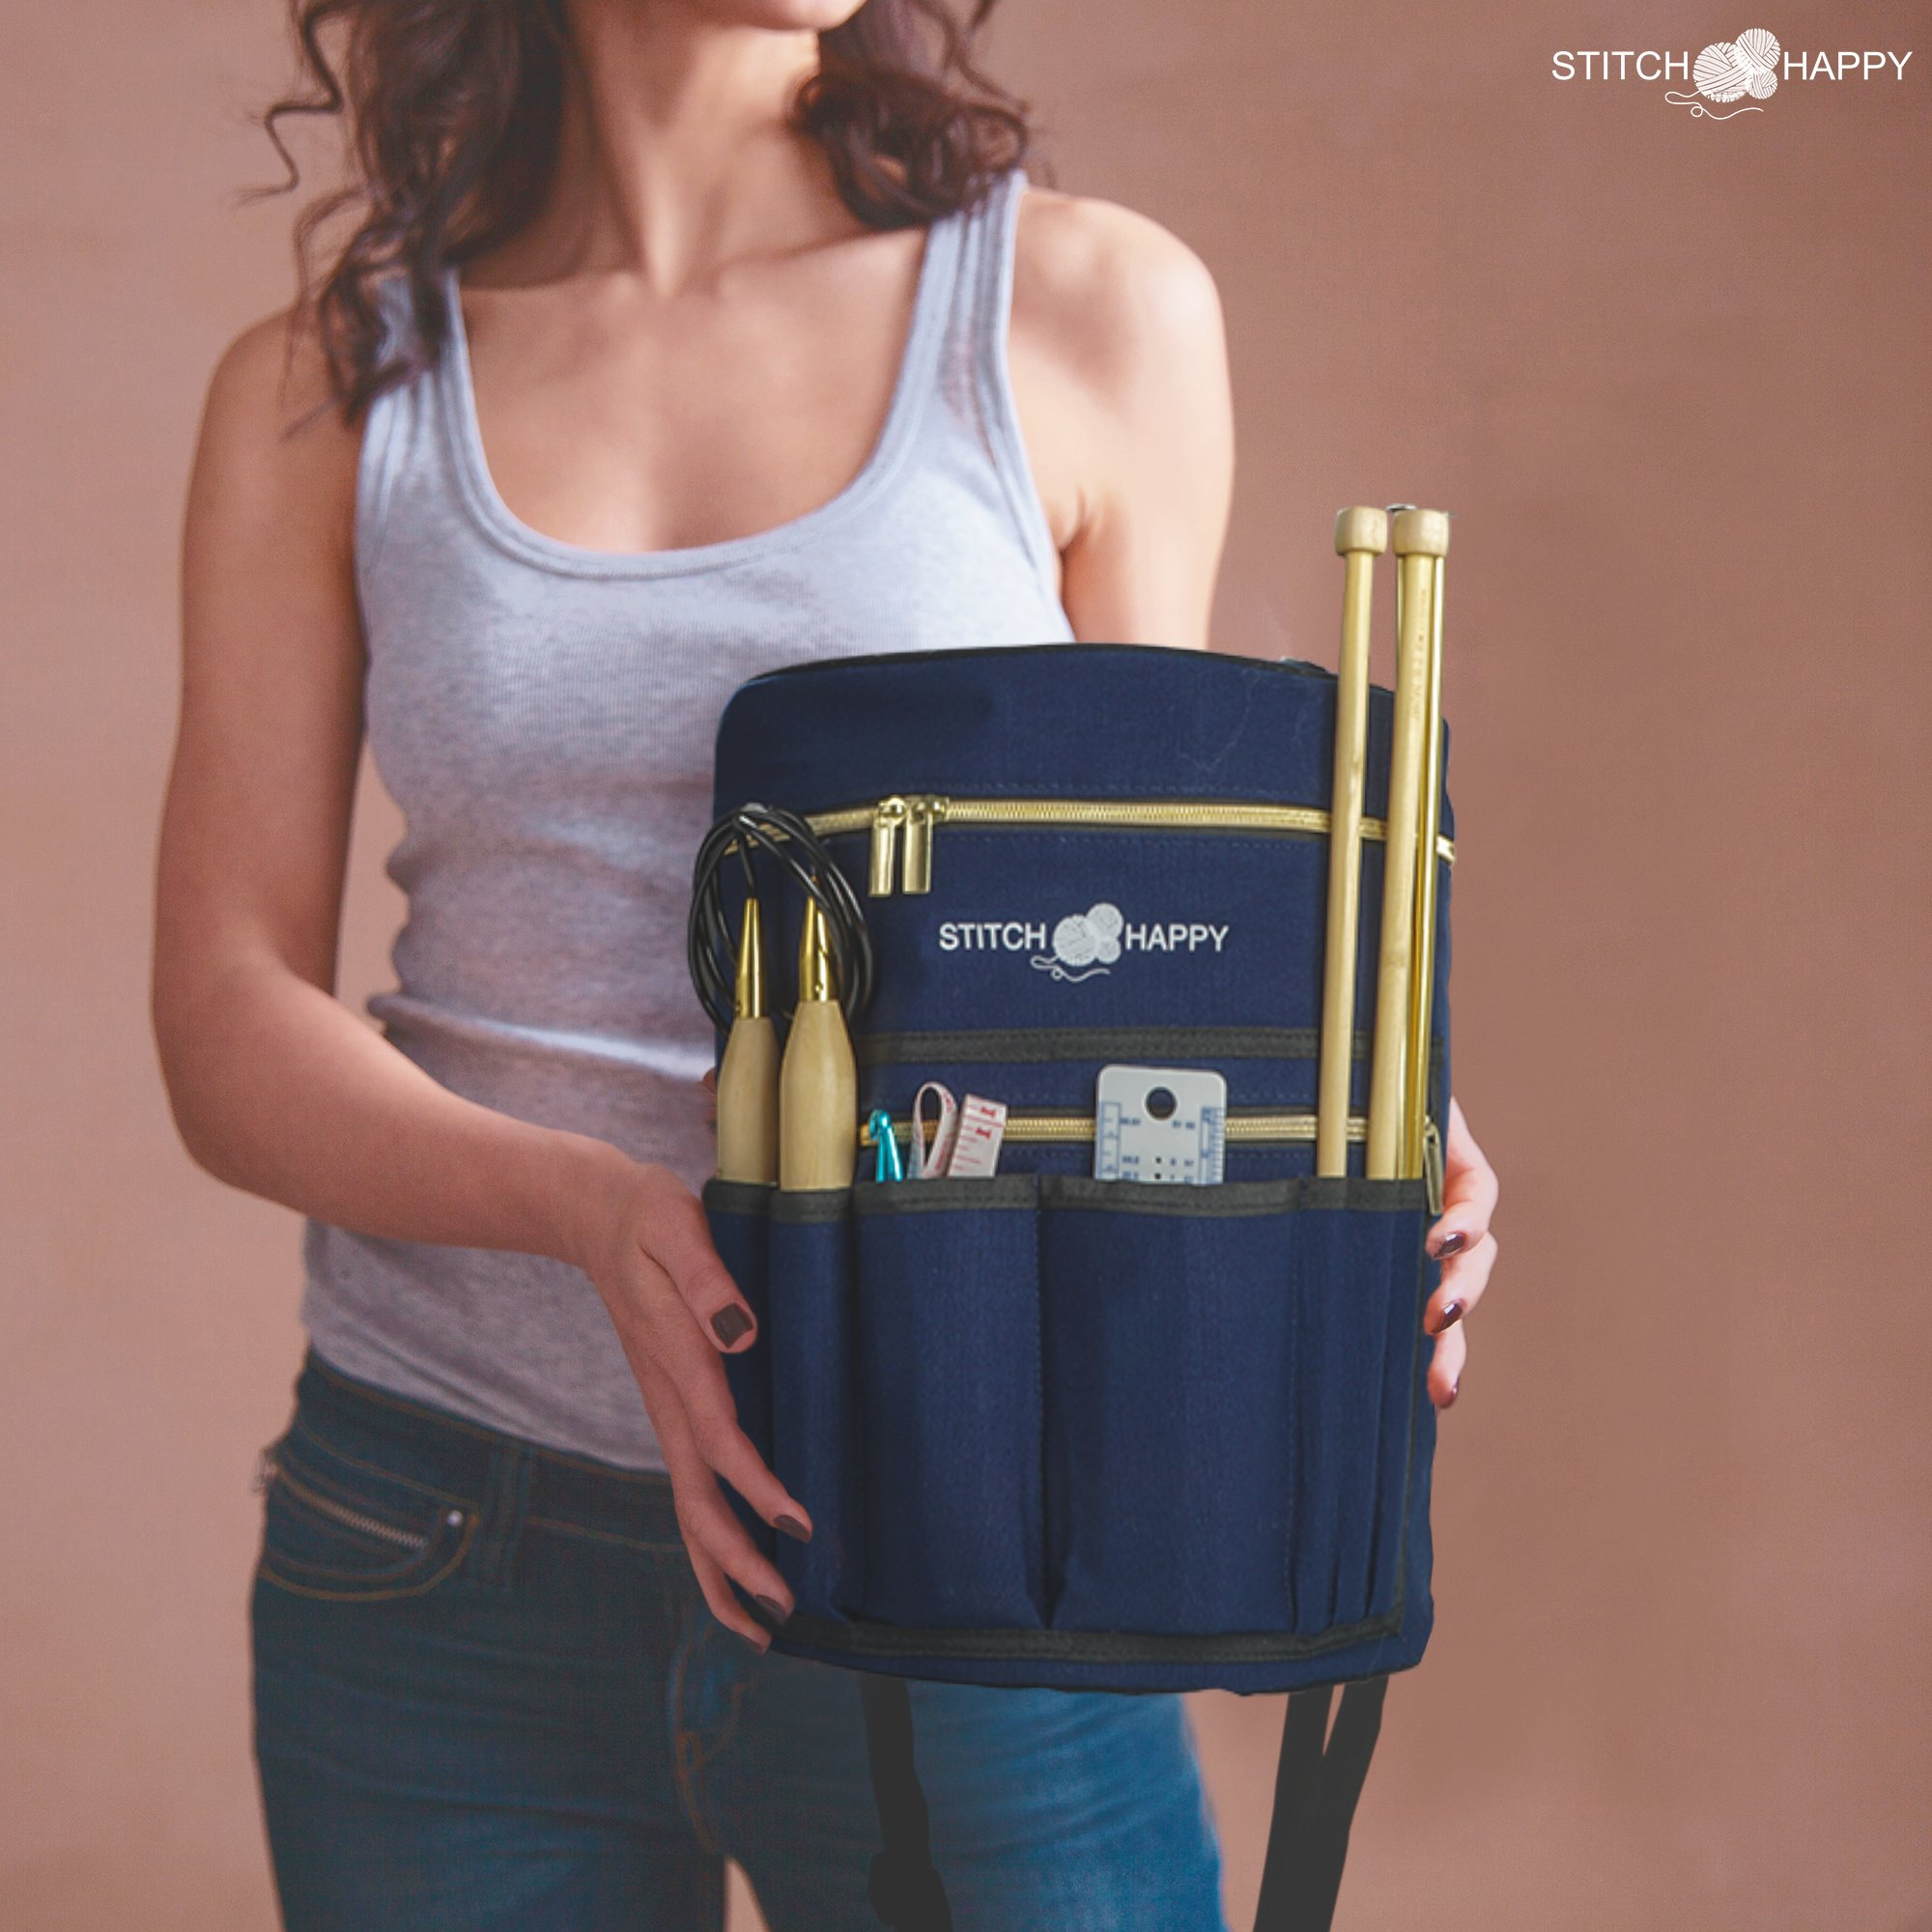 Knitting Bag - Yarn Tote Organizer w/Tool Case, 7 Pockets + Divider for Extra Storage of Projects, Supplies & Crochet (Navy) by Stitch Happy by Stitch Happy (Image #8)